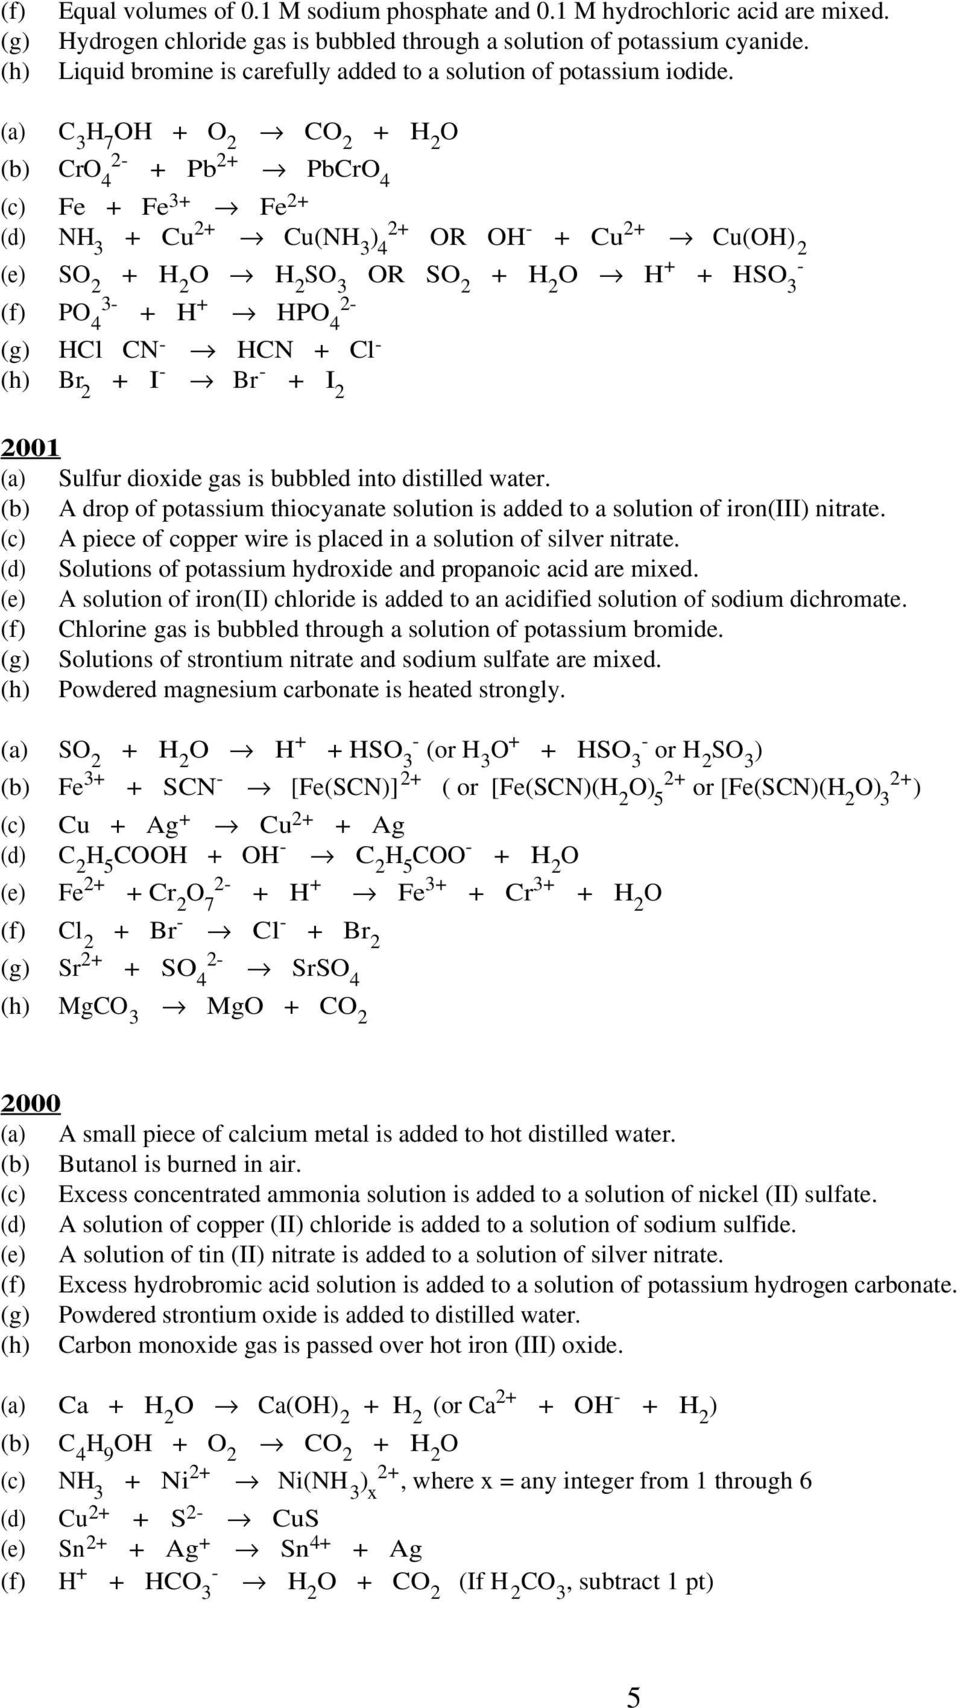 AP Chemistry Exam Reactions: Questions and Answers - PDF